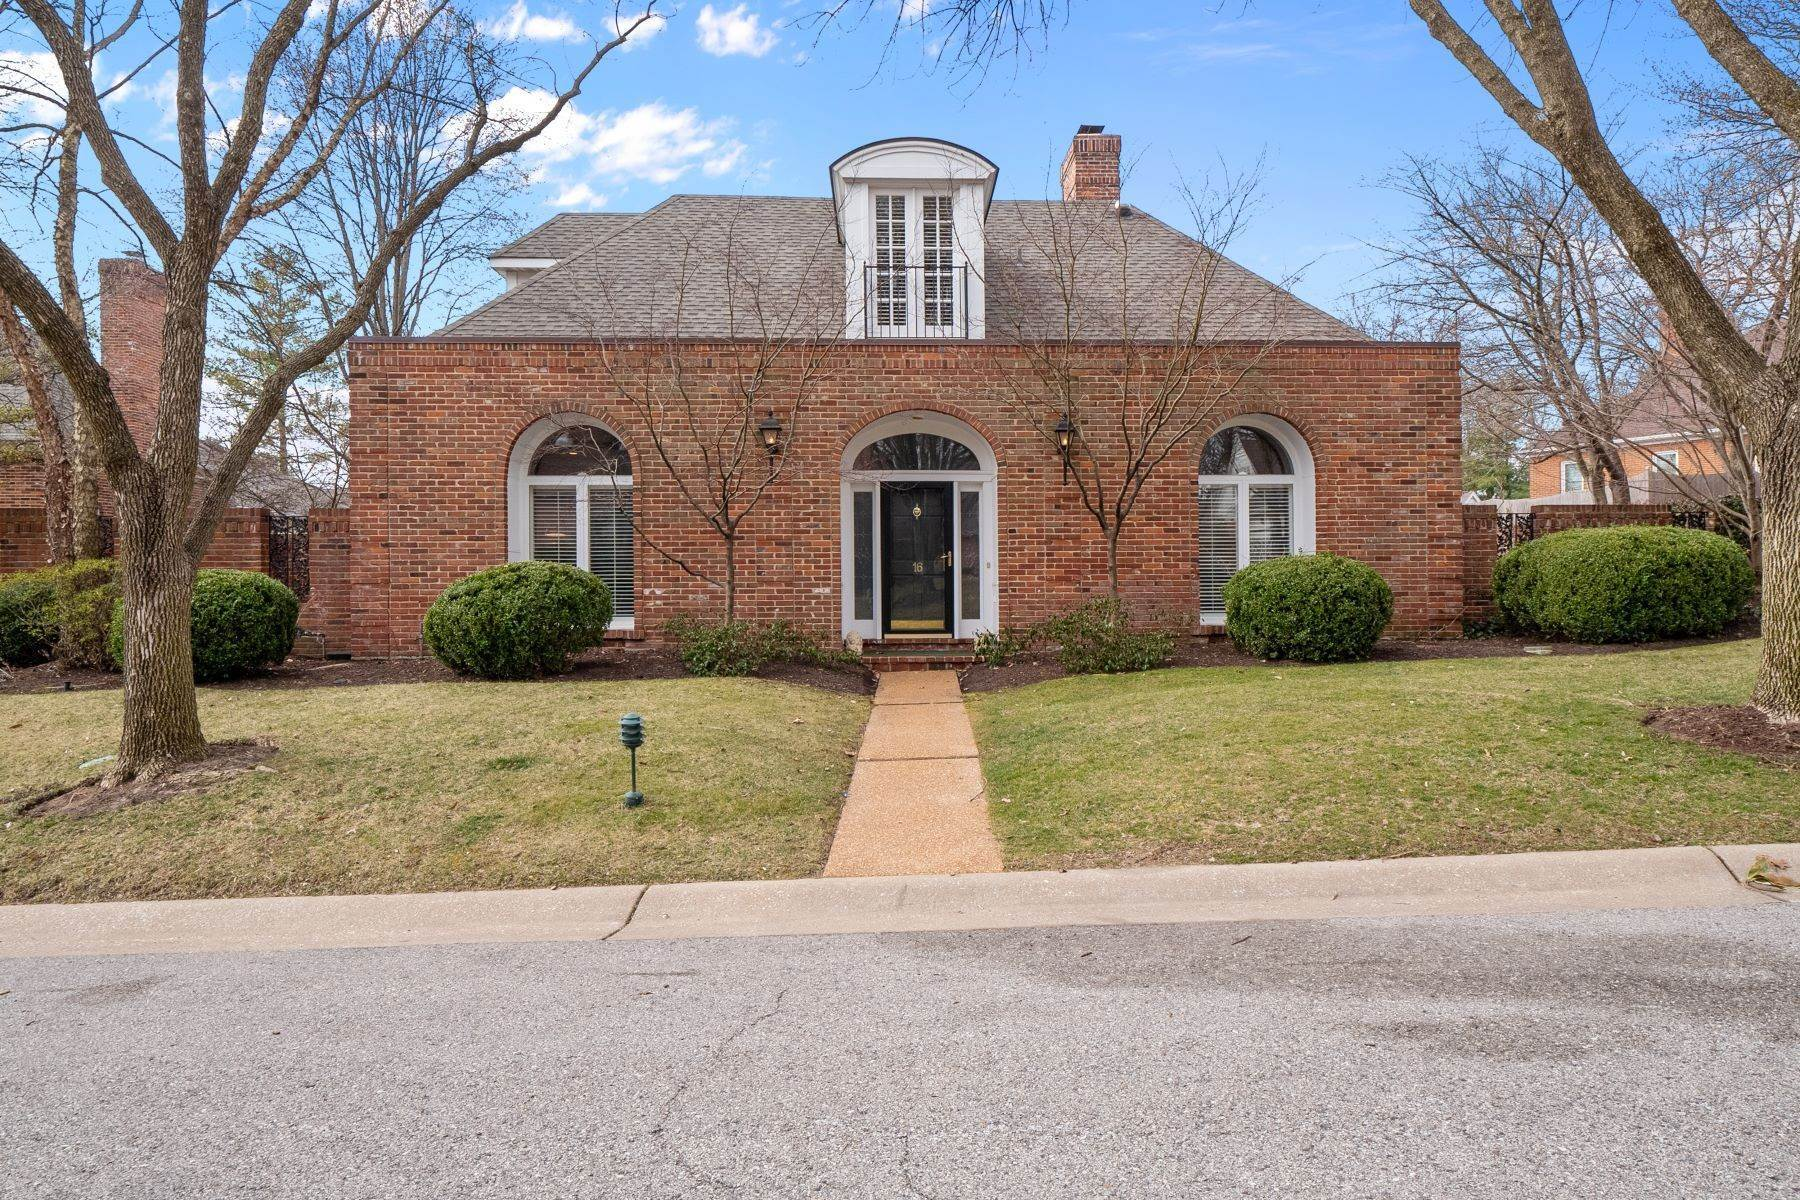 1. Single Family Homes for Sale at Crowned Jewel of Upper Price 16 Upper Price Road Olivette, Missouri 63132 United States